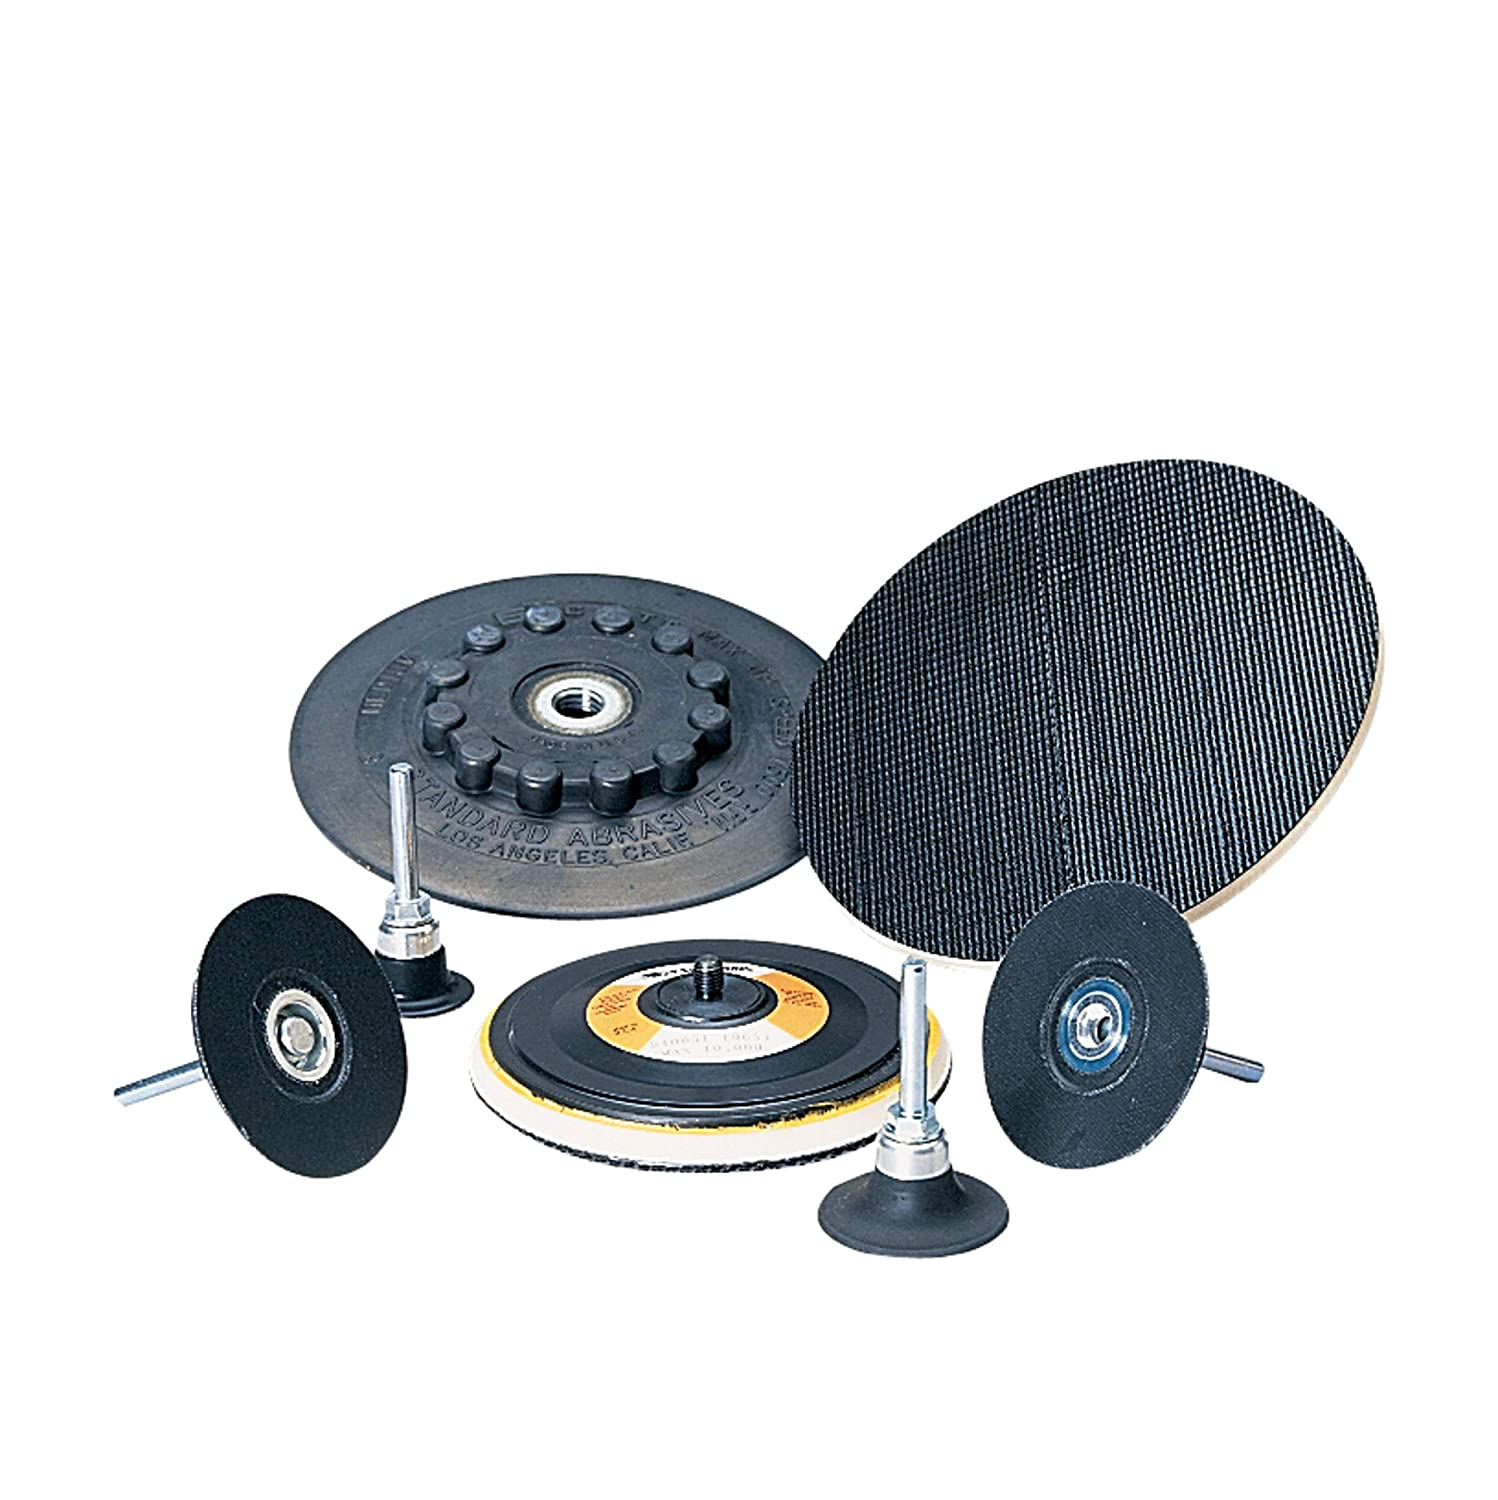 Standard Abrasives Surface Conditioning GP Disc 845618 5 in MED 3M